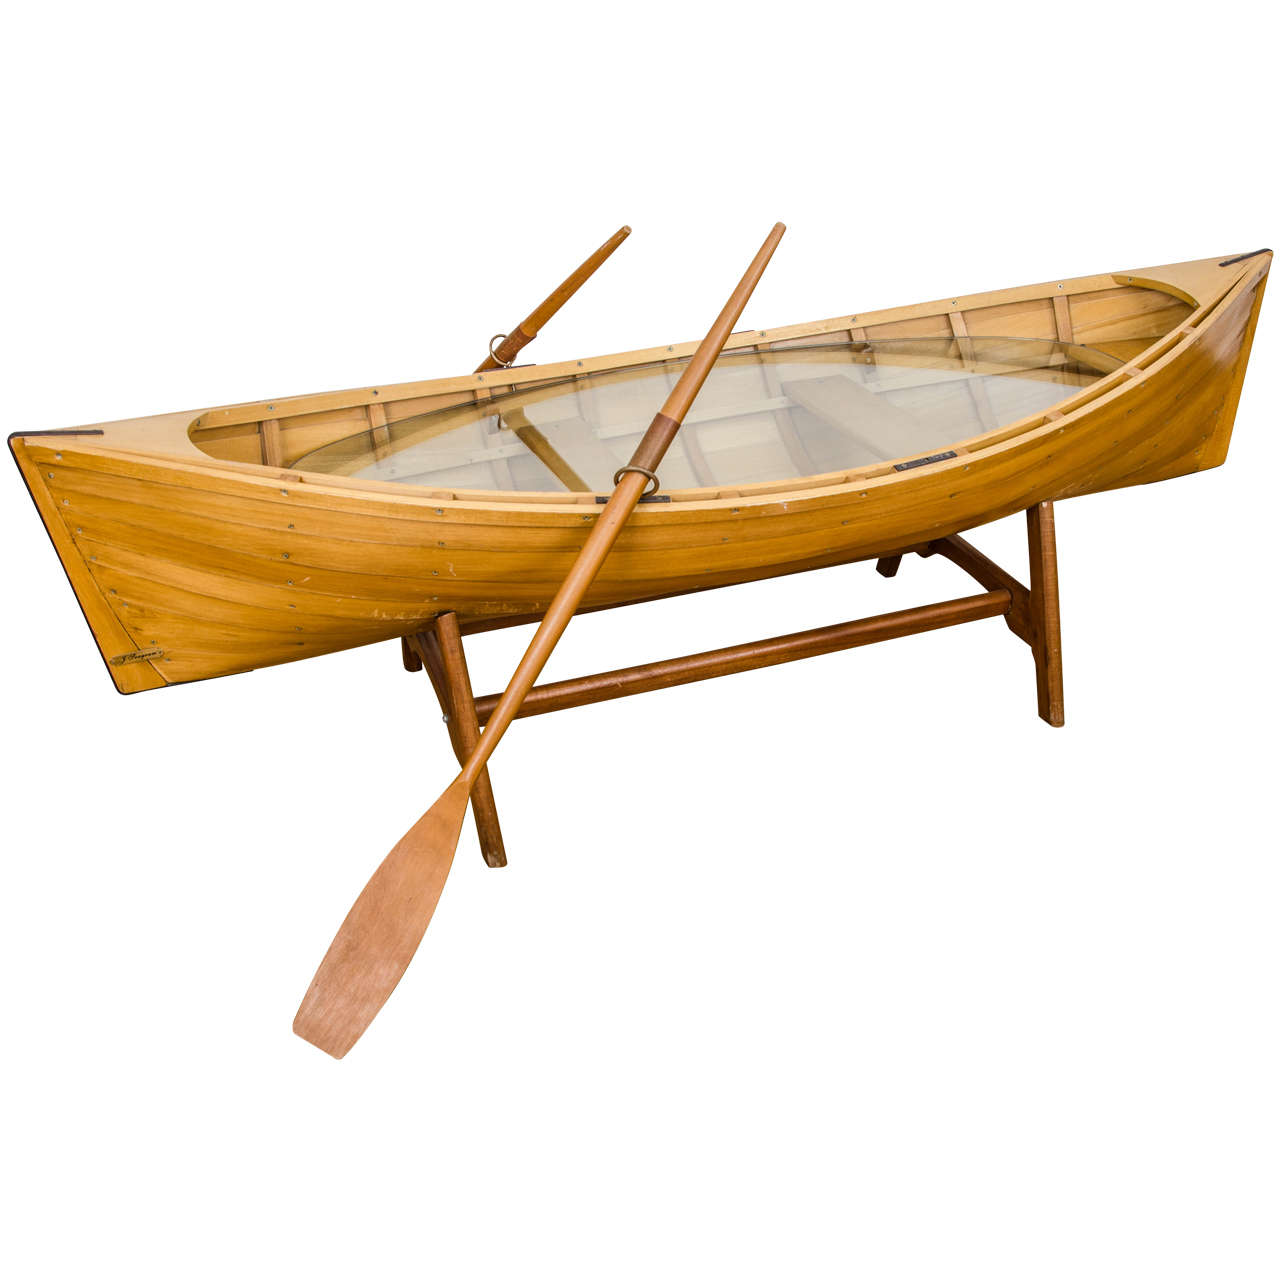 Boat Coffee Table Wooden Boat Coffee Table For Sale At 1stdibs 218 Boat Coffee Table Lot 218